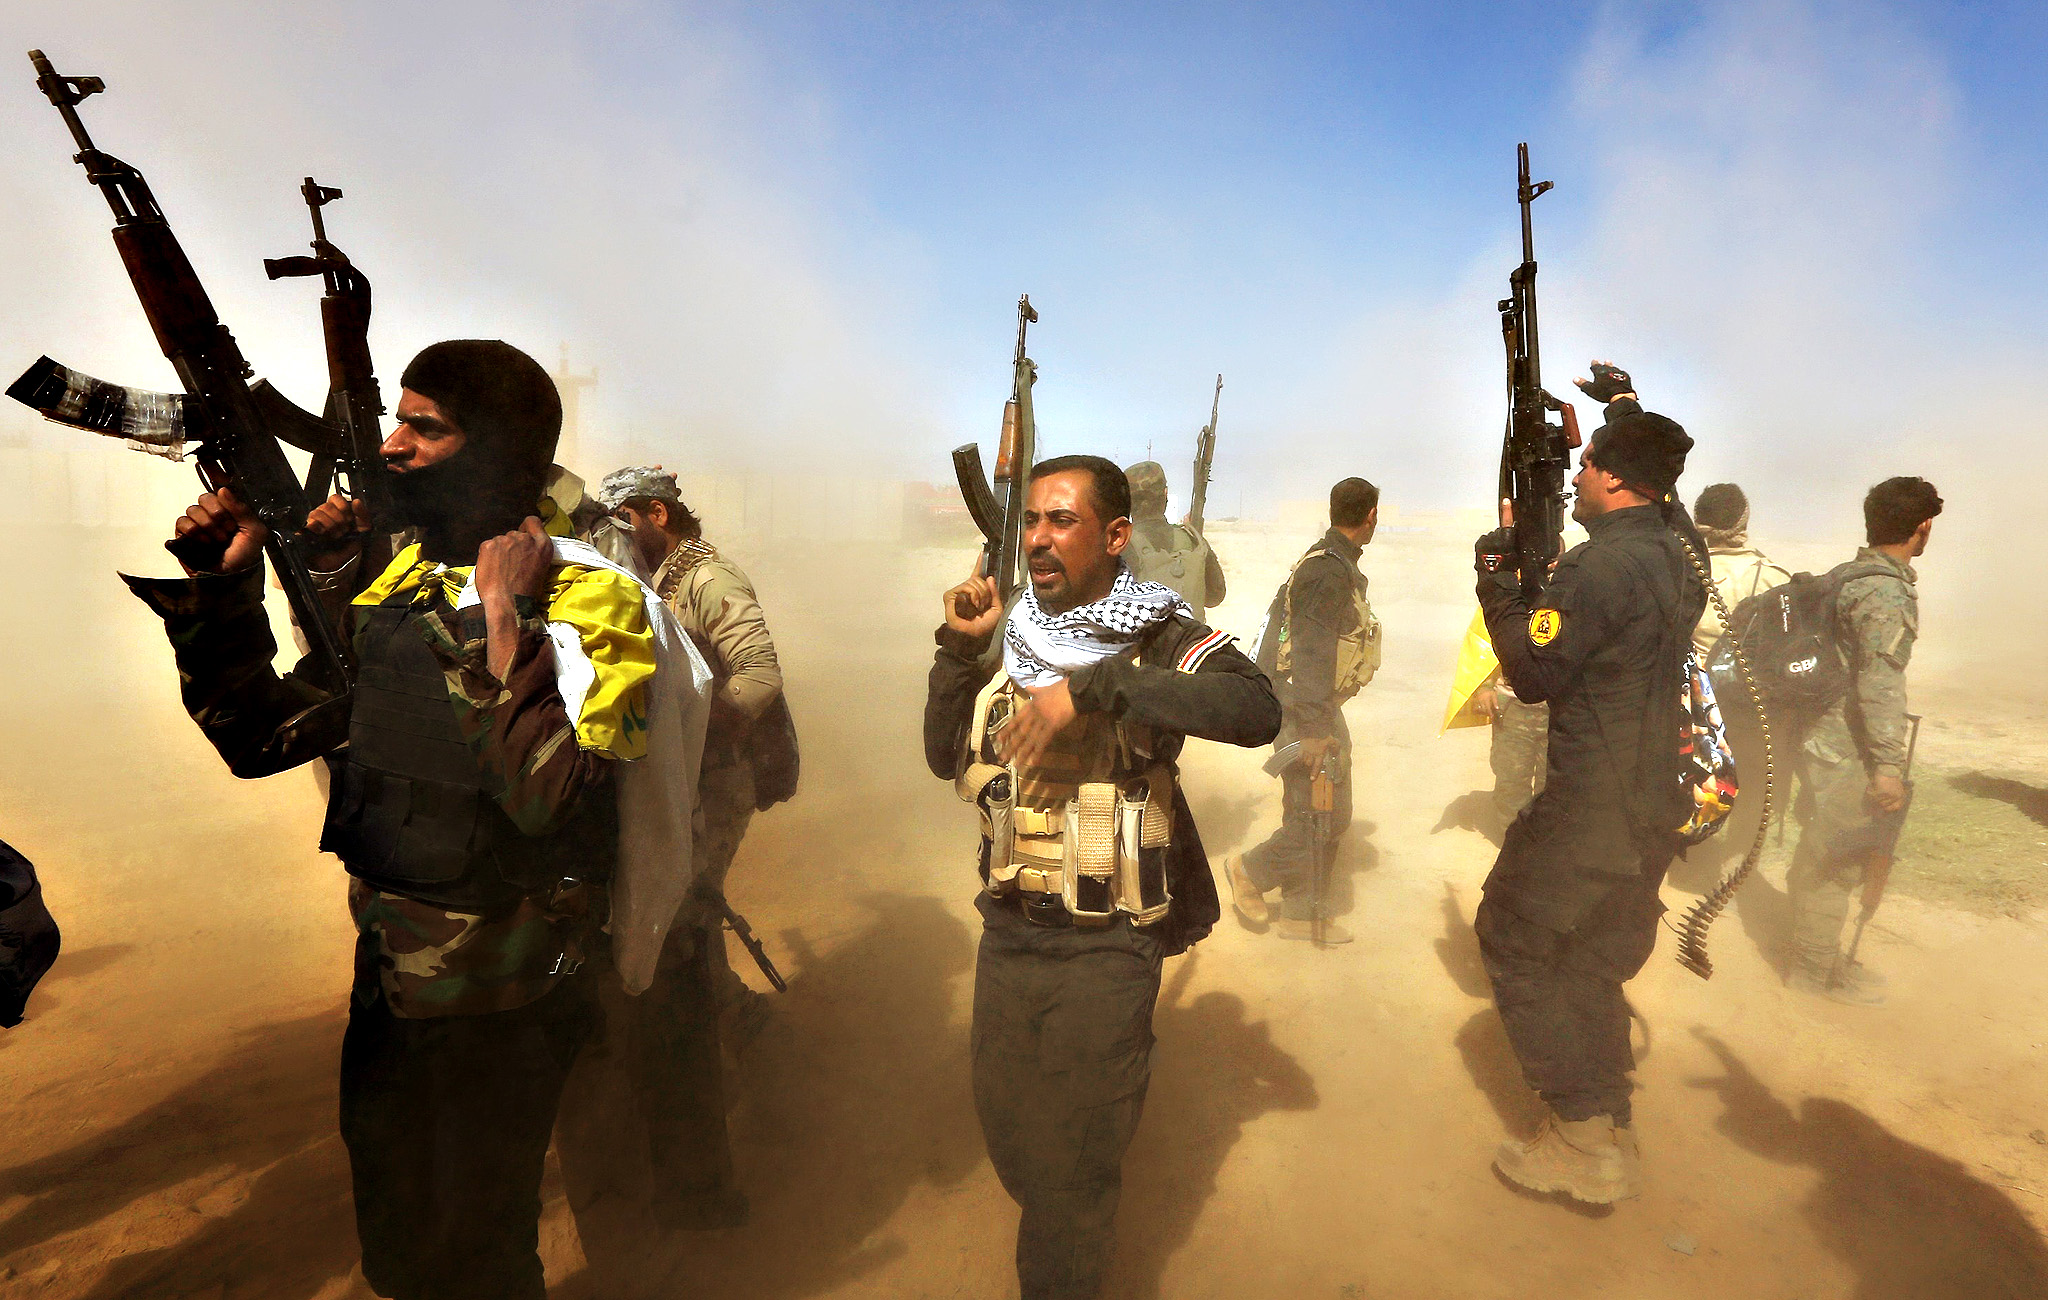 Iraqi fighters of the government-controlled Popular Mobilisation units take part in a military operation to take control of Tikrit, 160 kms north of Baghdad,  from jihadists from the Islamic state (IS) group, on March 11 2015.  The city, which is the home town of former president Saddam Hussein, is the toughest target for the government troops and allied militias that started winning back lost ground last year.